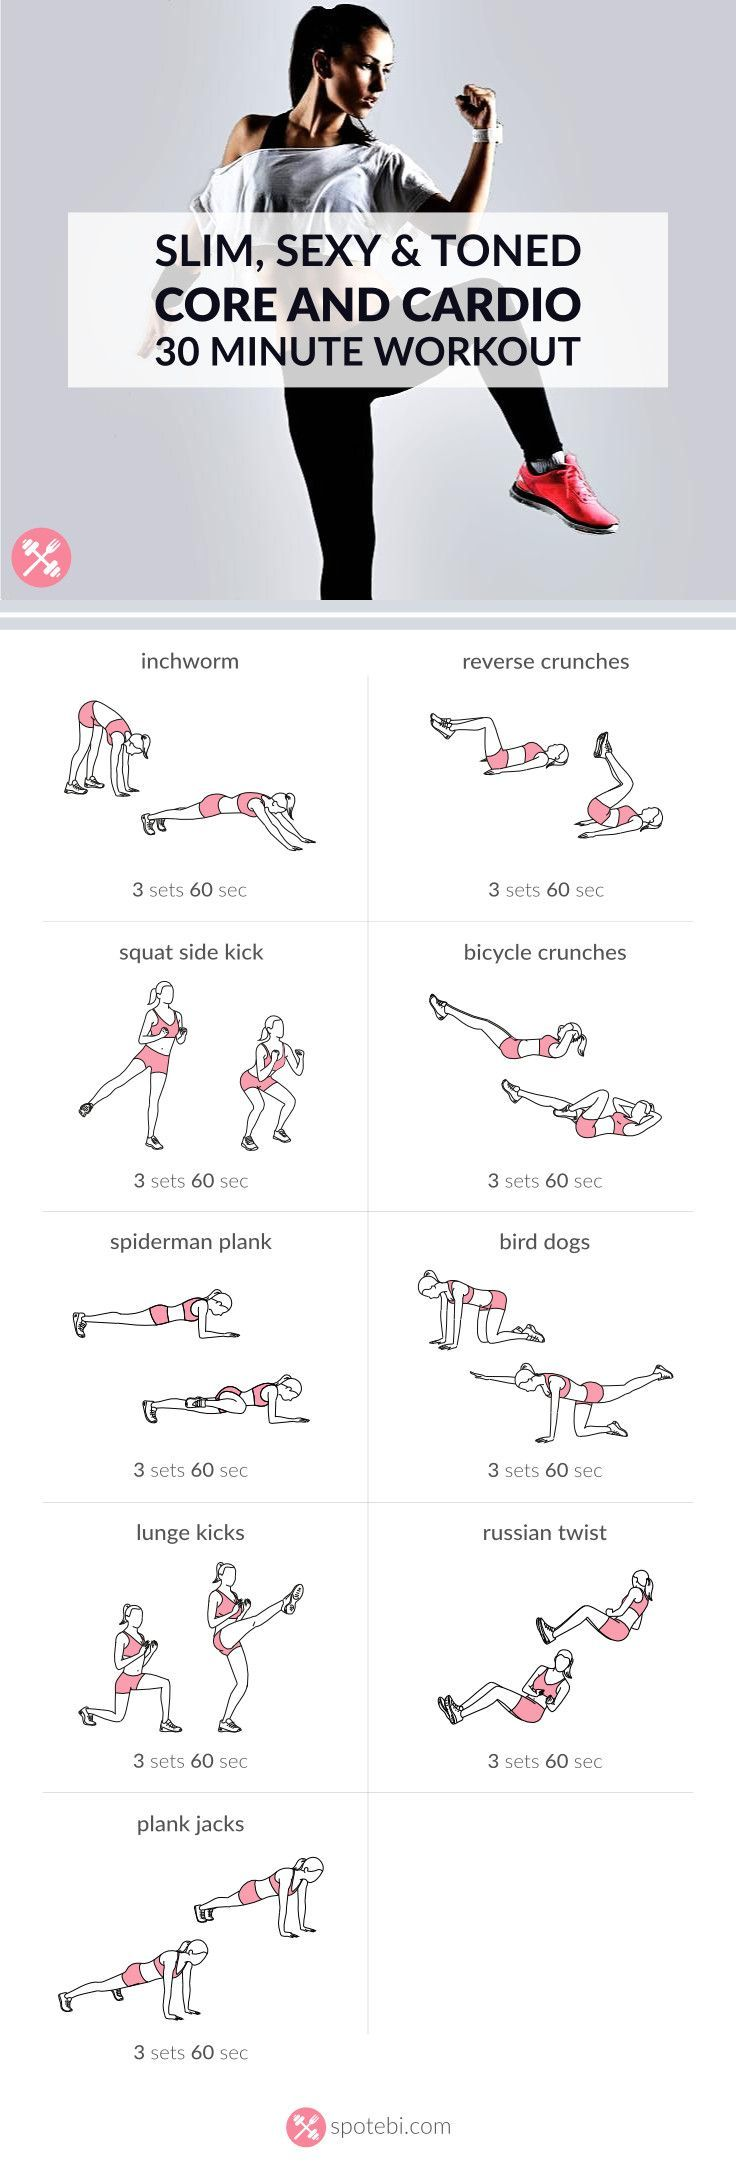 Work your abs, obliques and lower back with this core and cardio workout. Increase your aerobic fitness at home and get a toned, sculpted and slim belly.